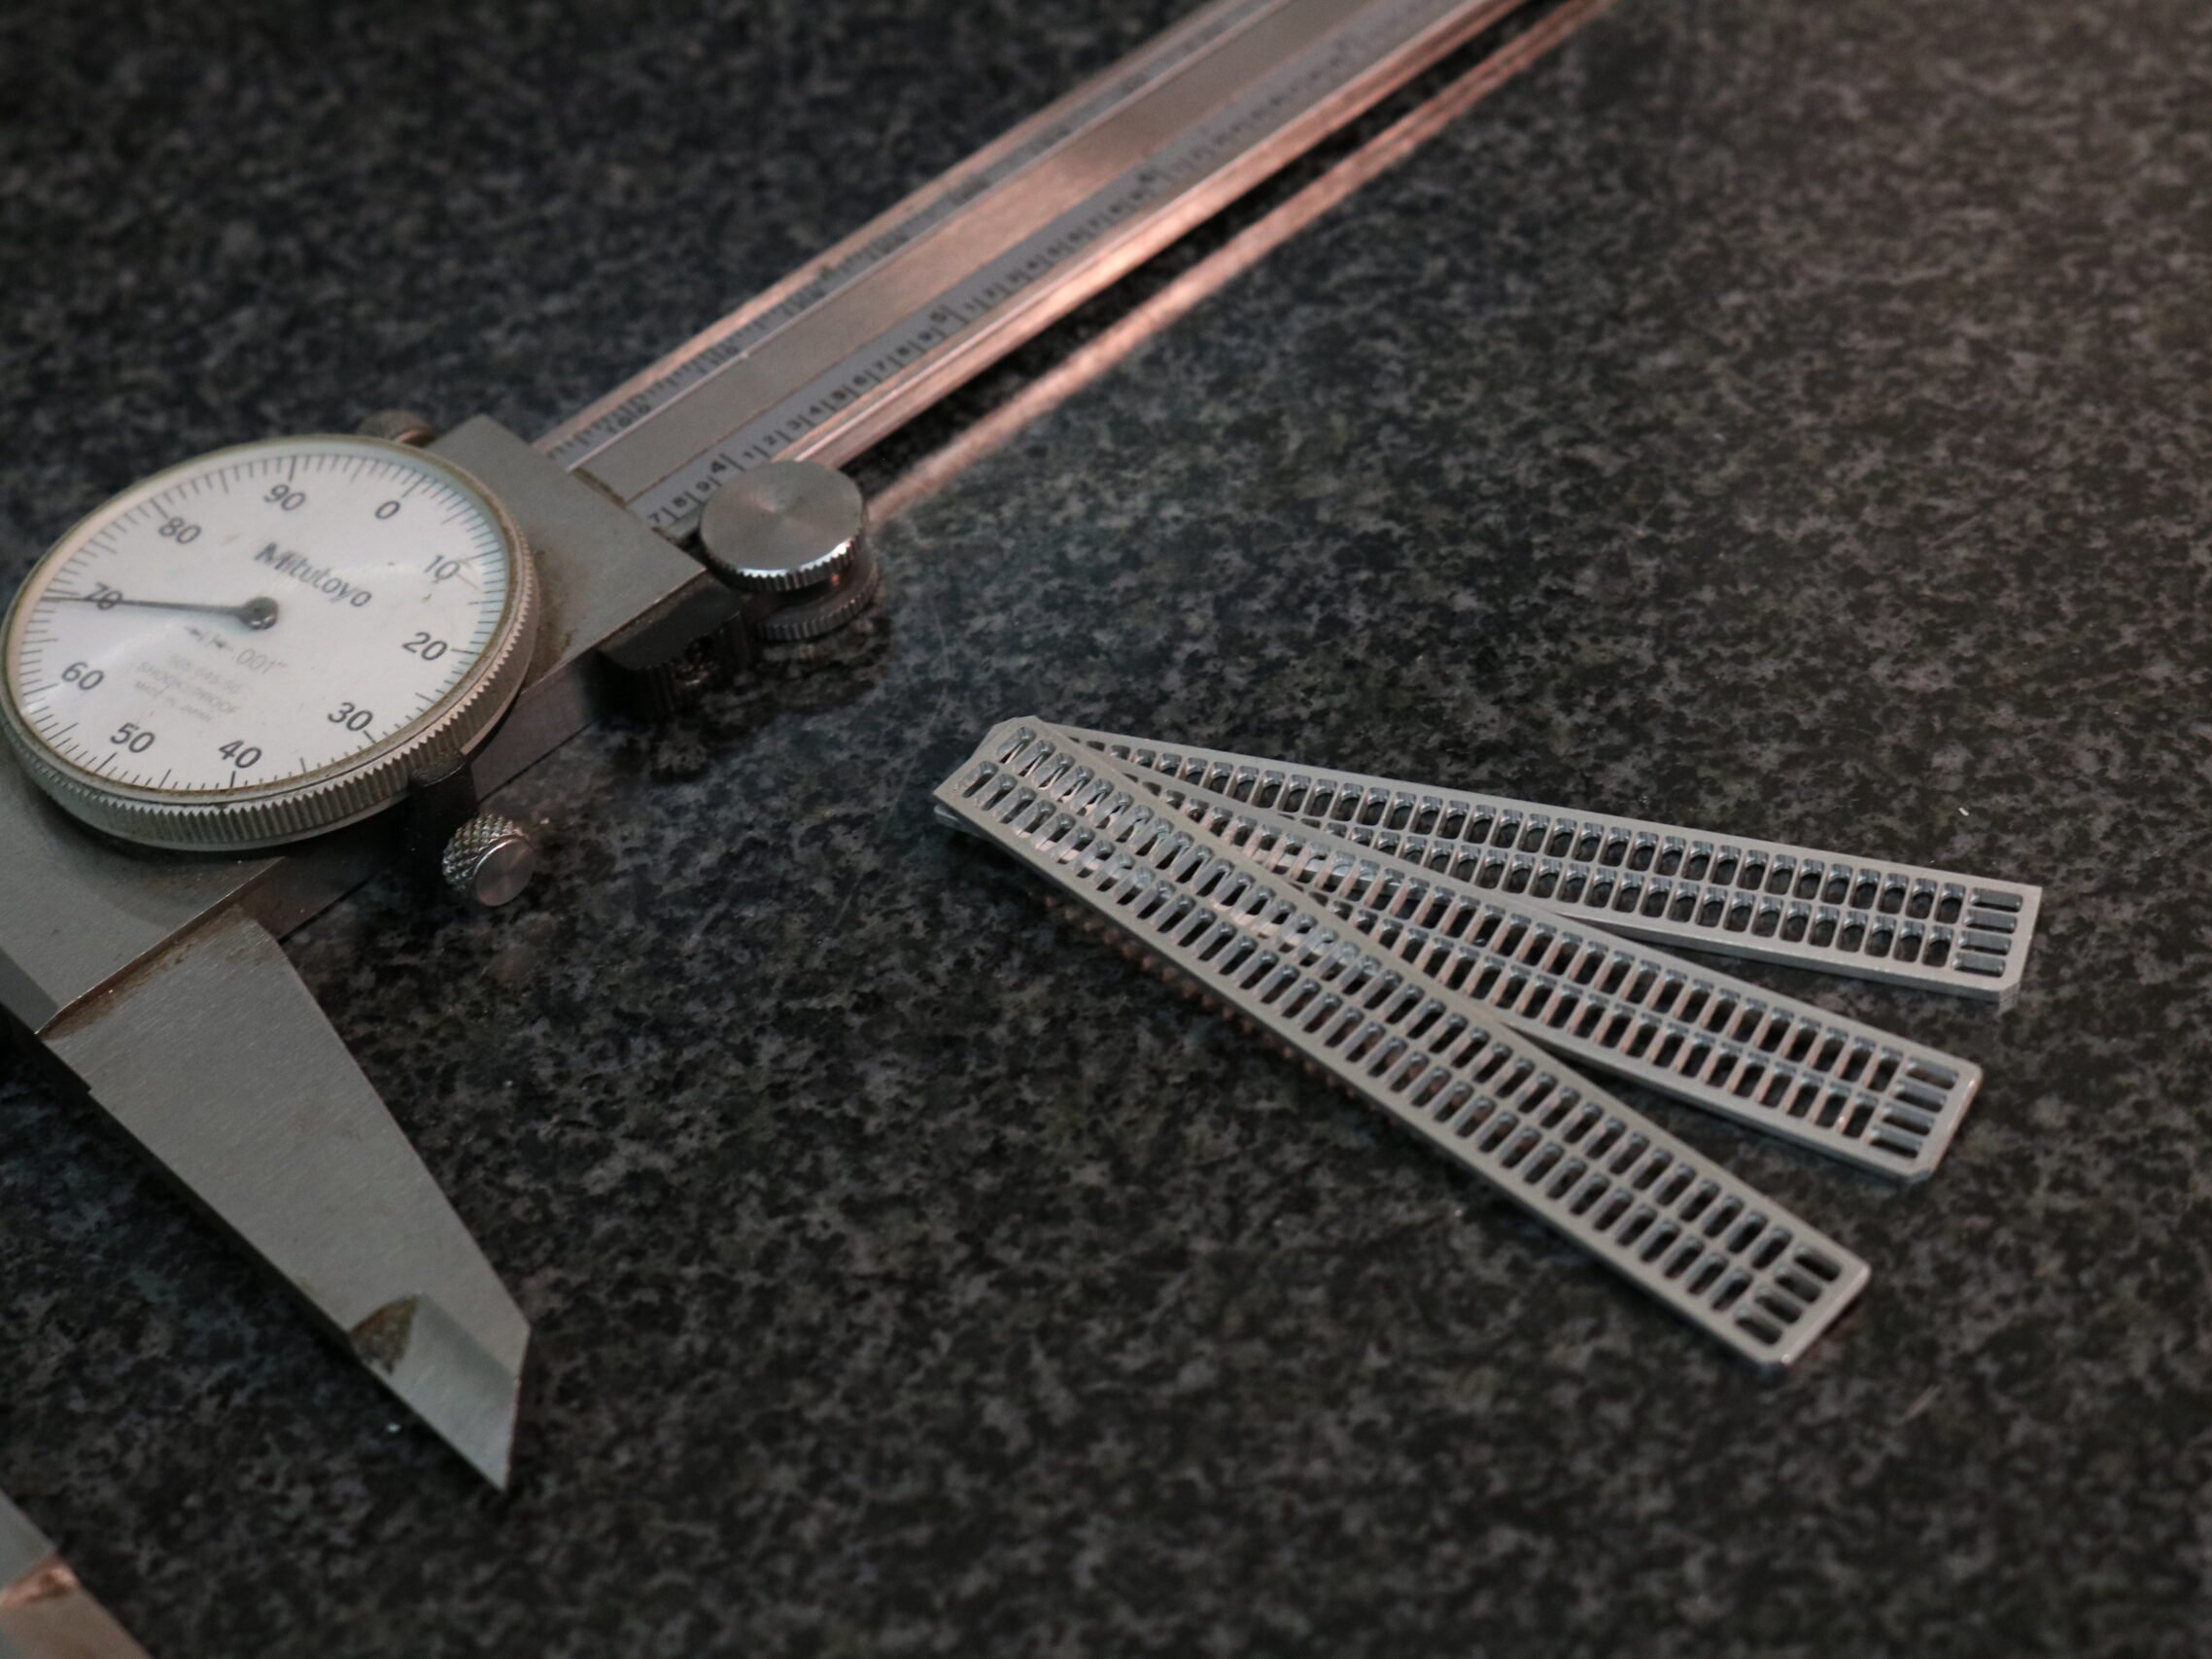 Calipers and inspection devices at Kelley-Tron Machine Co. used to maintain ISO compliance